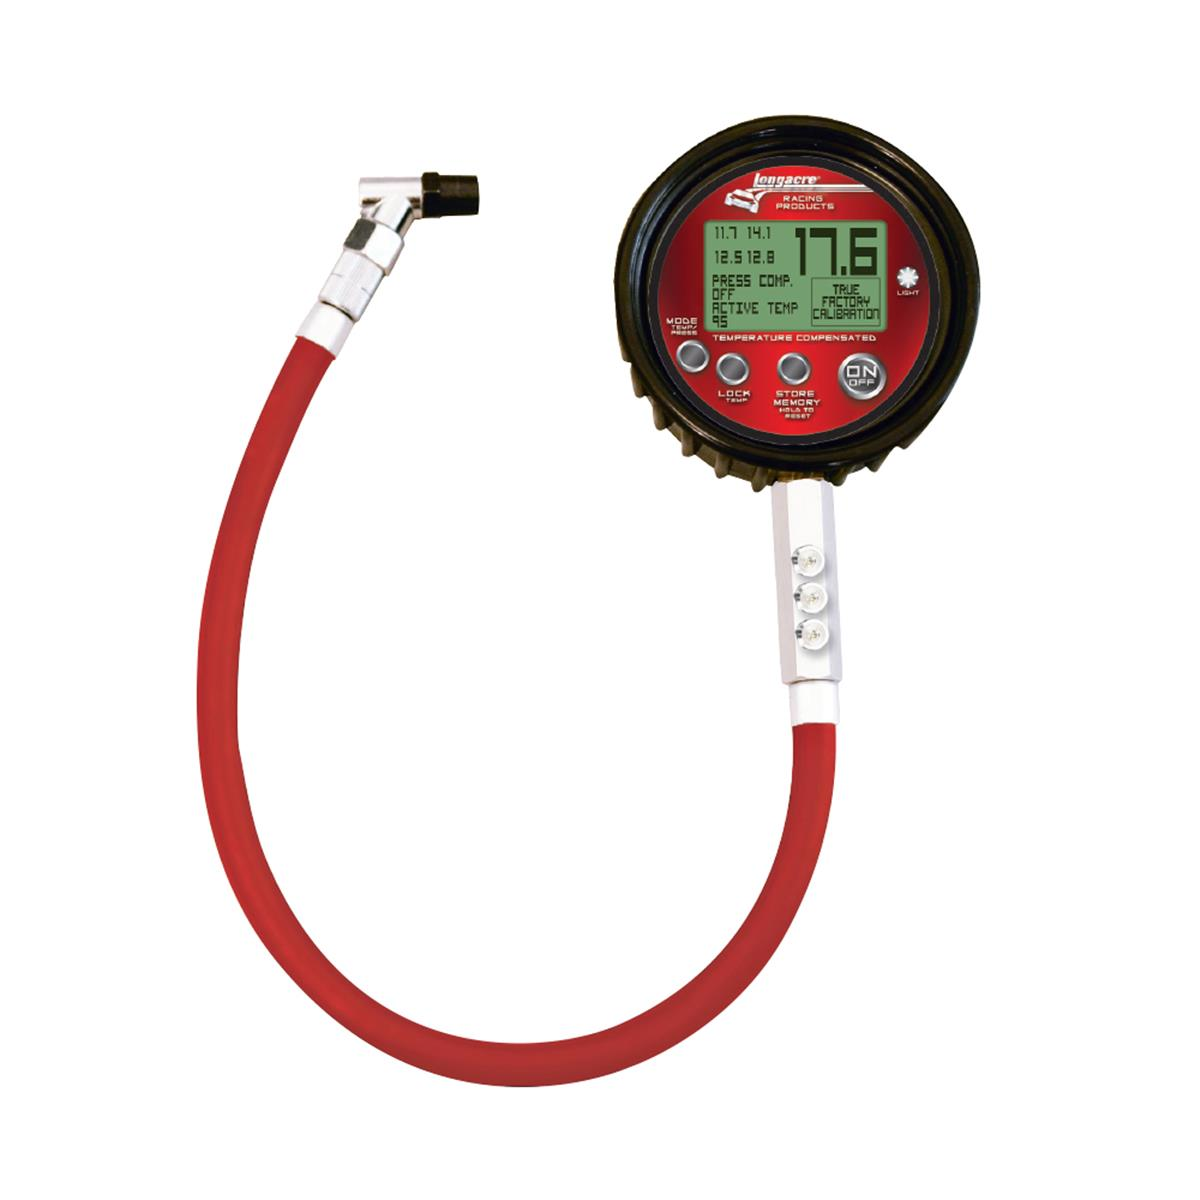 Ultimate Digital Tire Pressure Gauge 0-100 psi